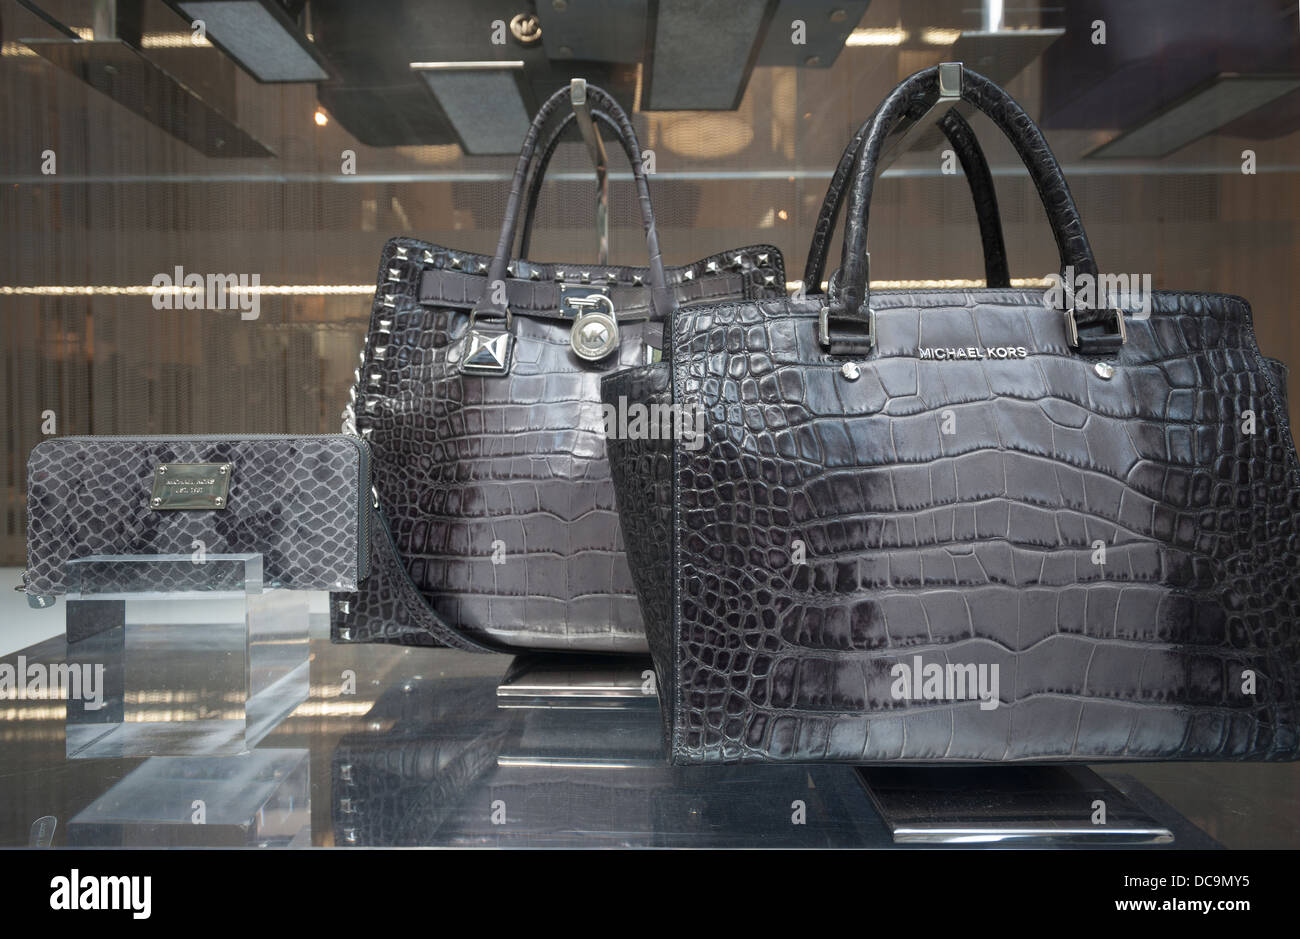 5a3c86f91b31 Handbags are featured in the window of the Michael Kors store on Fifth  Avenue in New